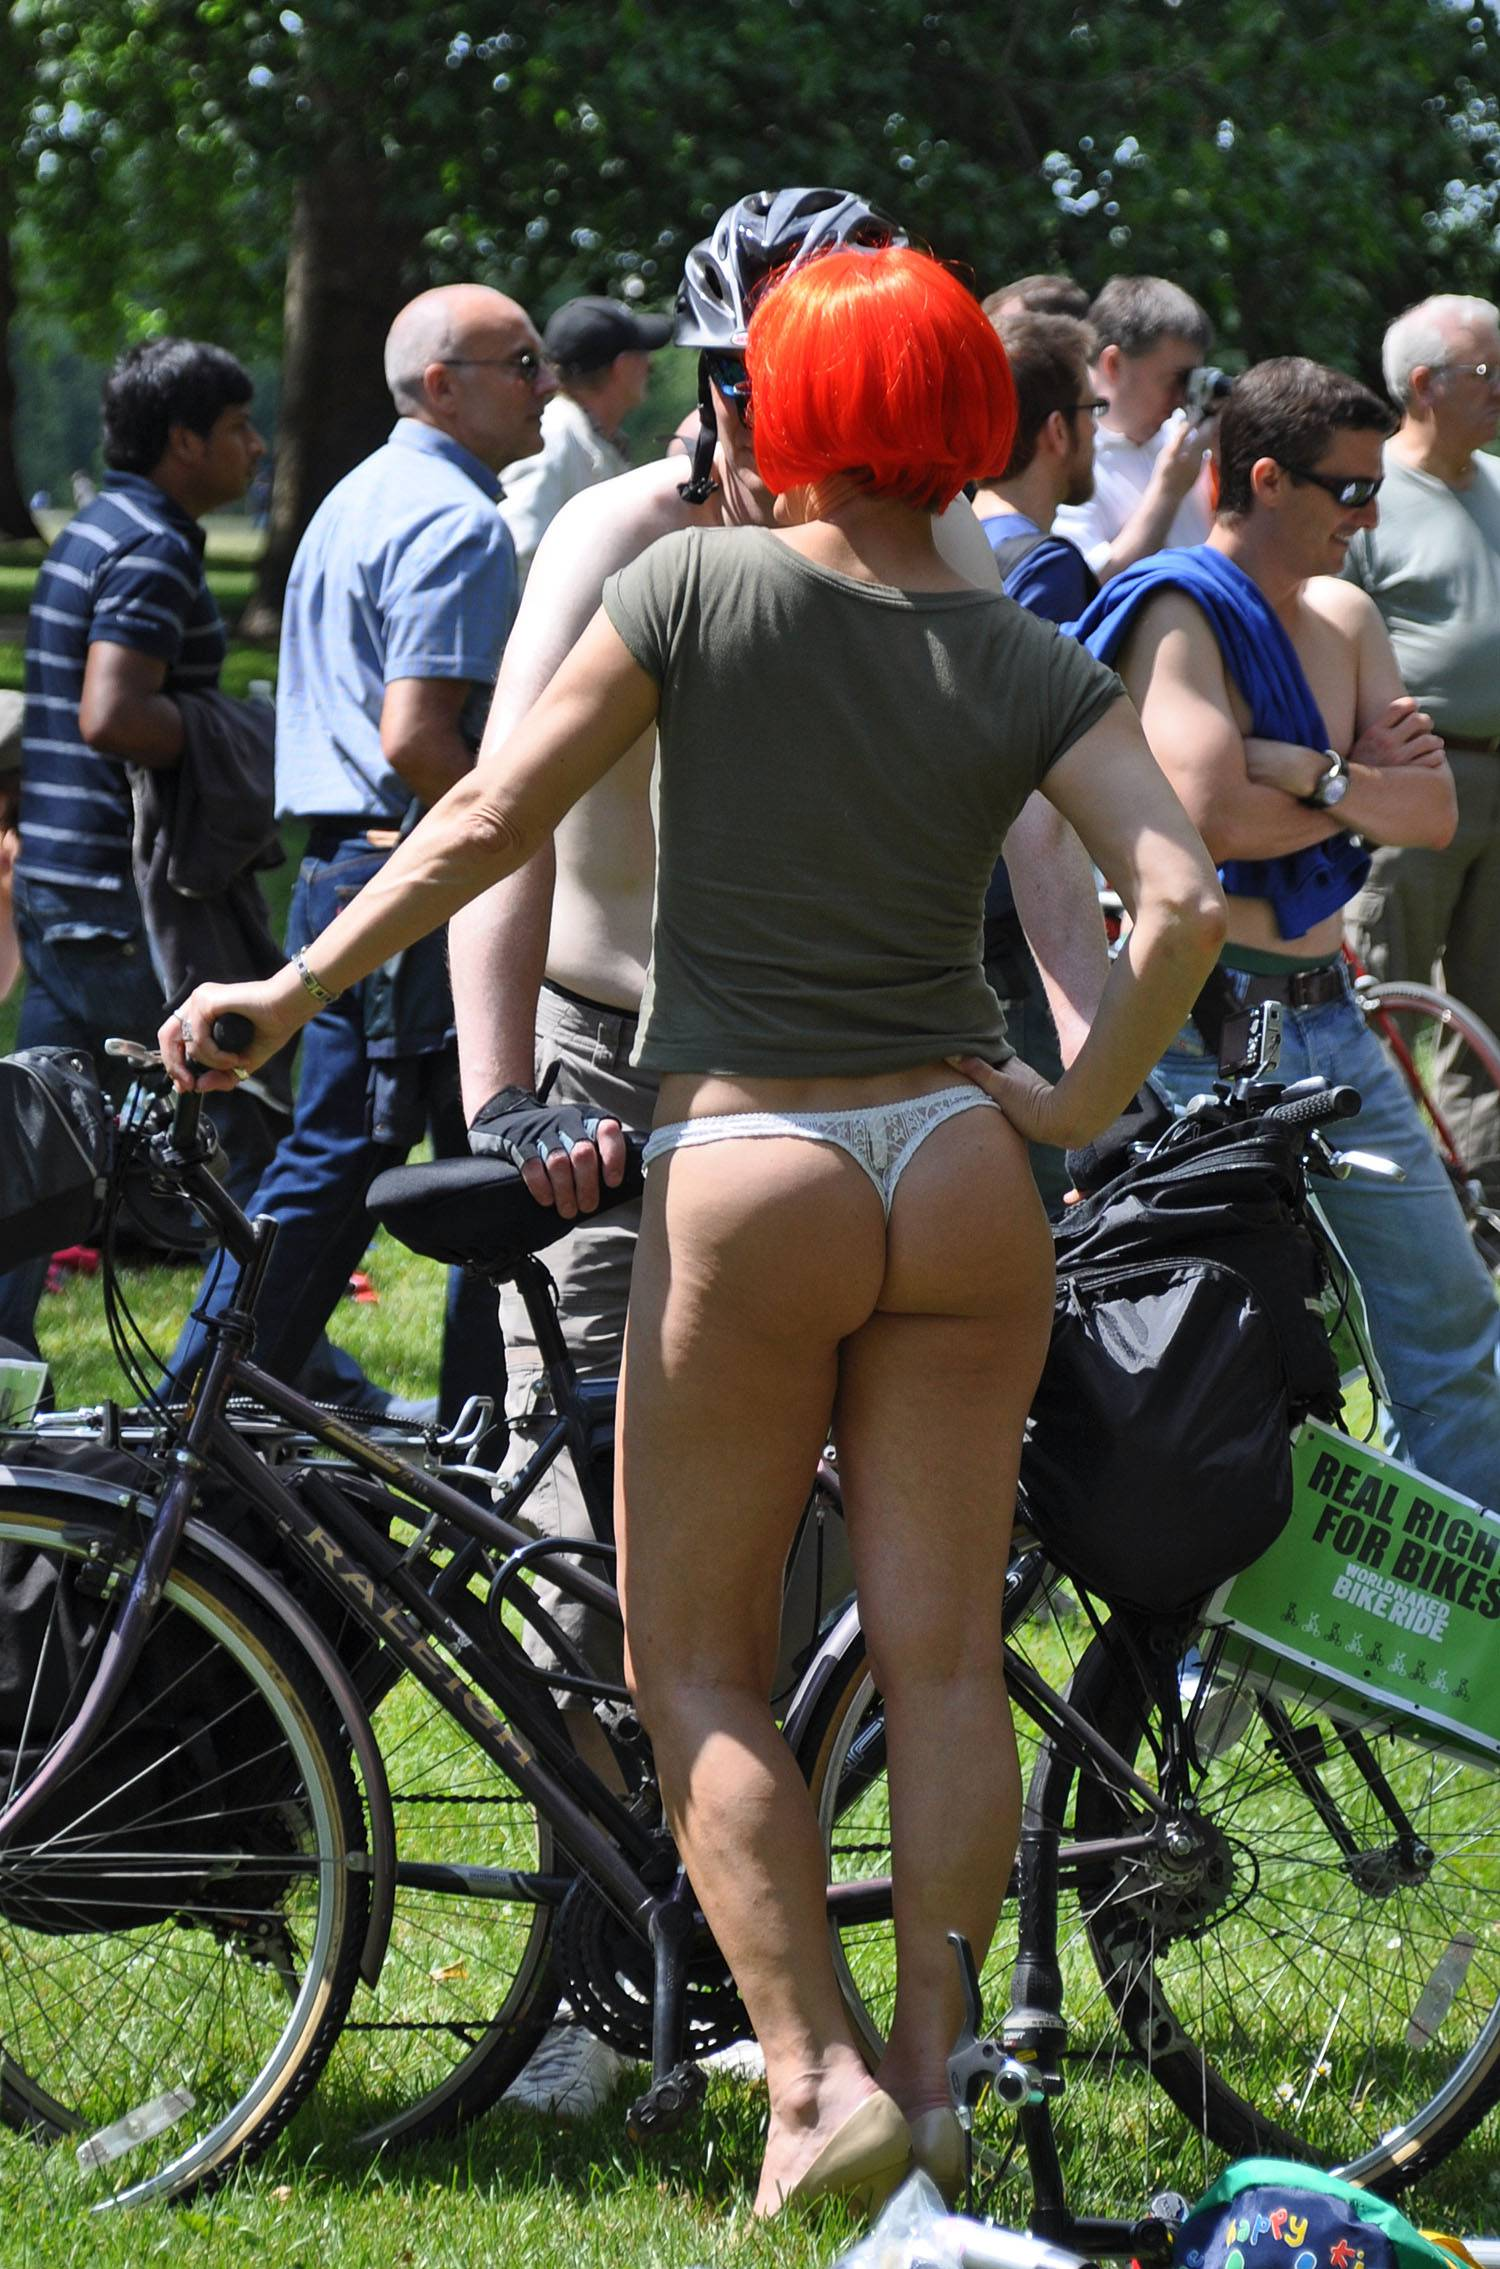 Nudist Pictures World Naked Bike Ride (WNBR) 2009 - 1